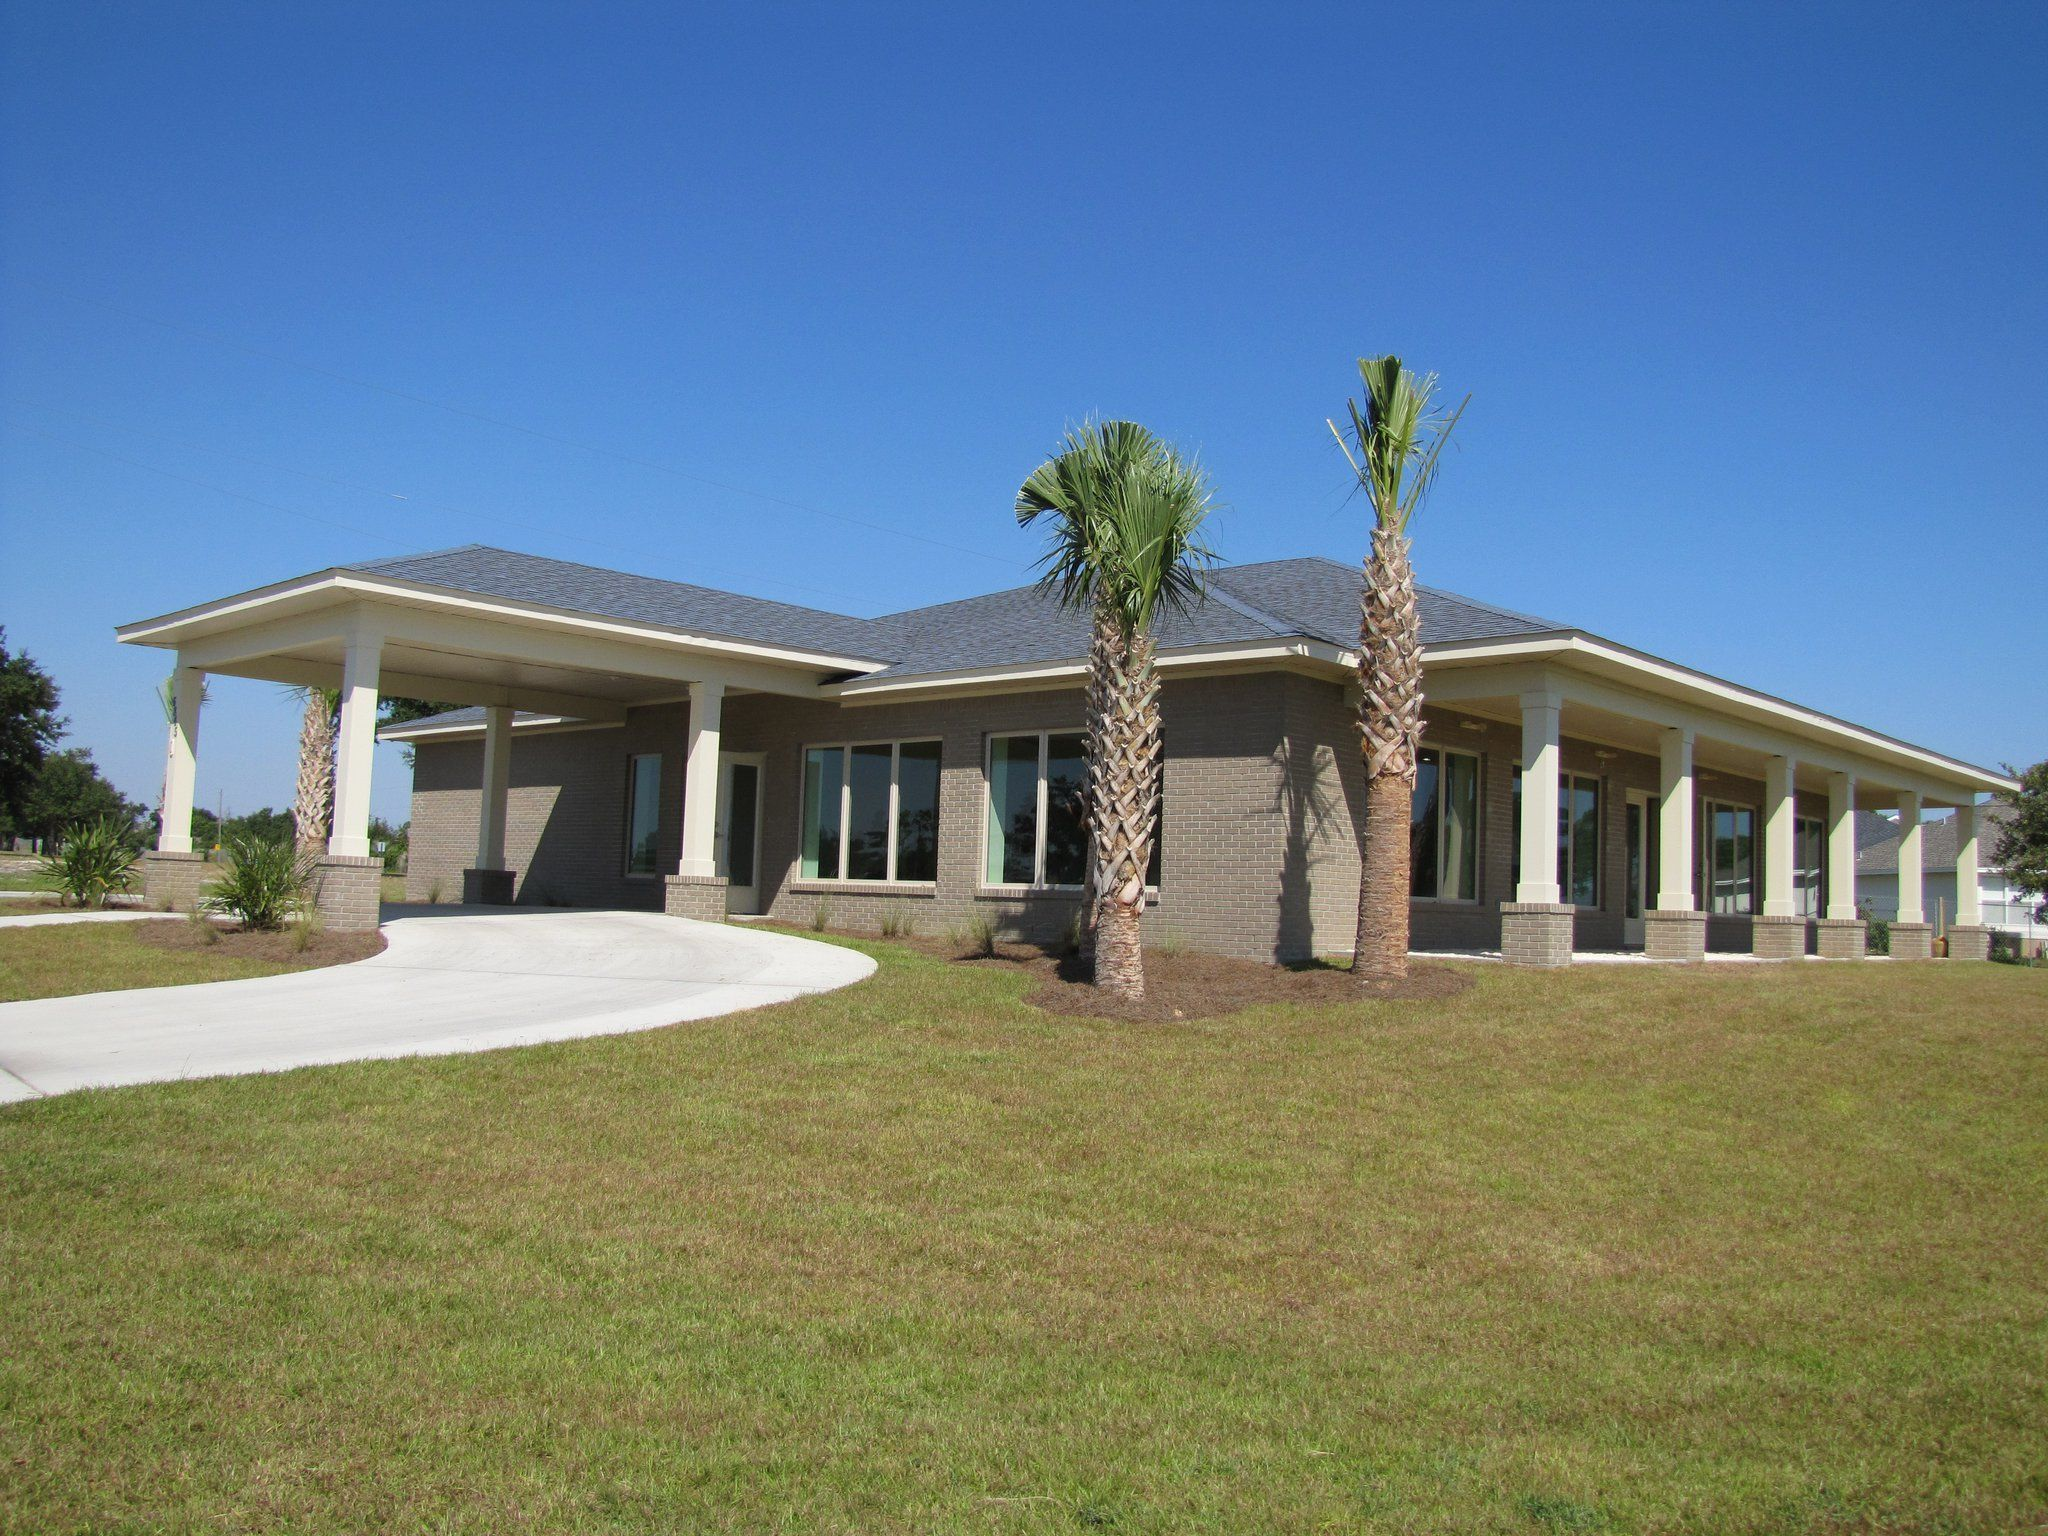 Recreation Center Beach House Holley By The Sea Navarre